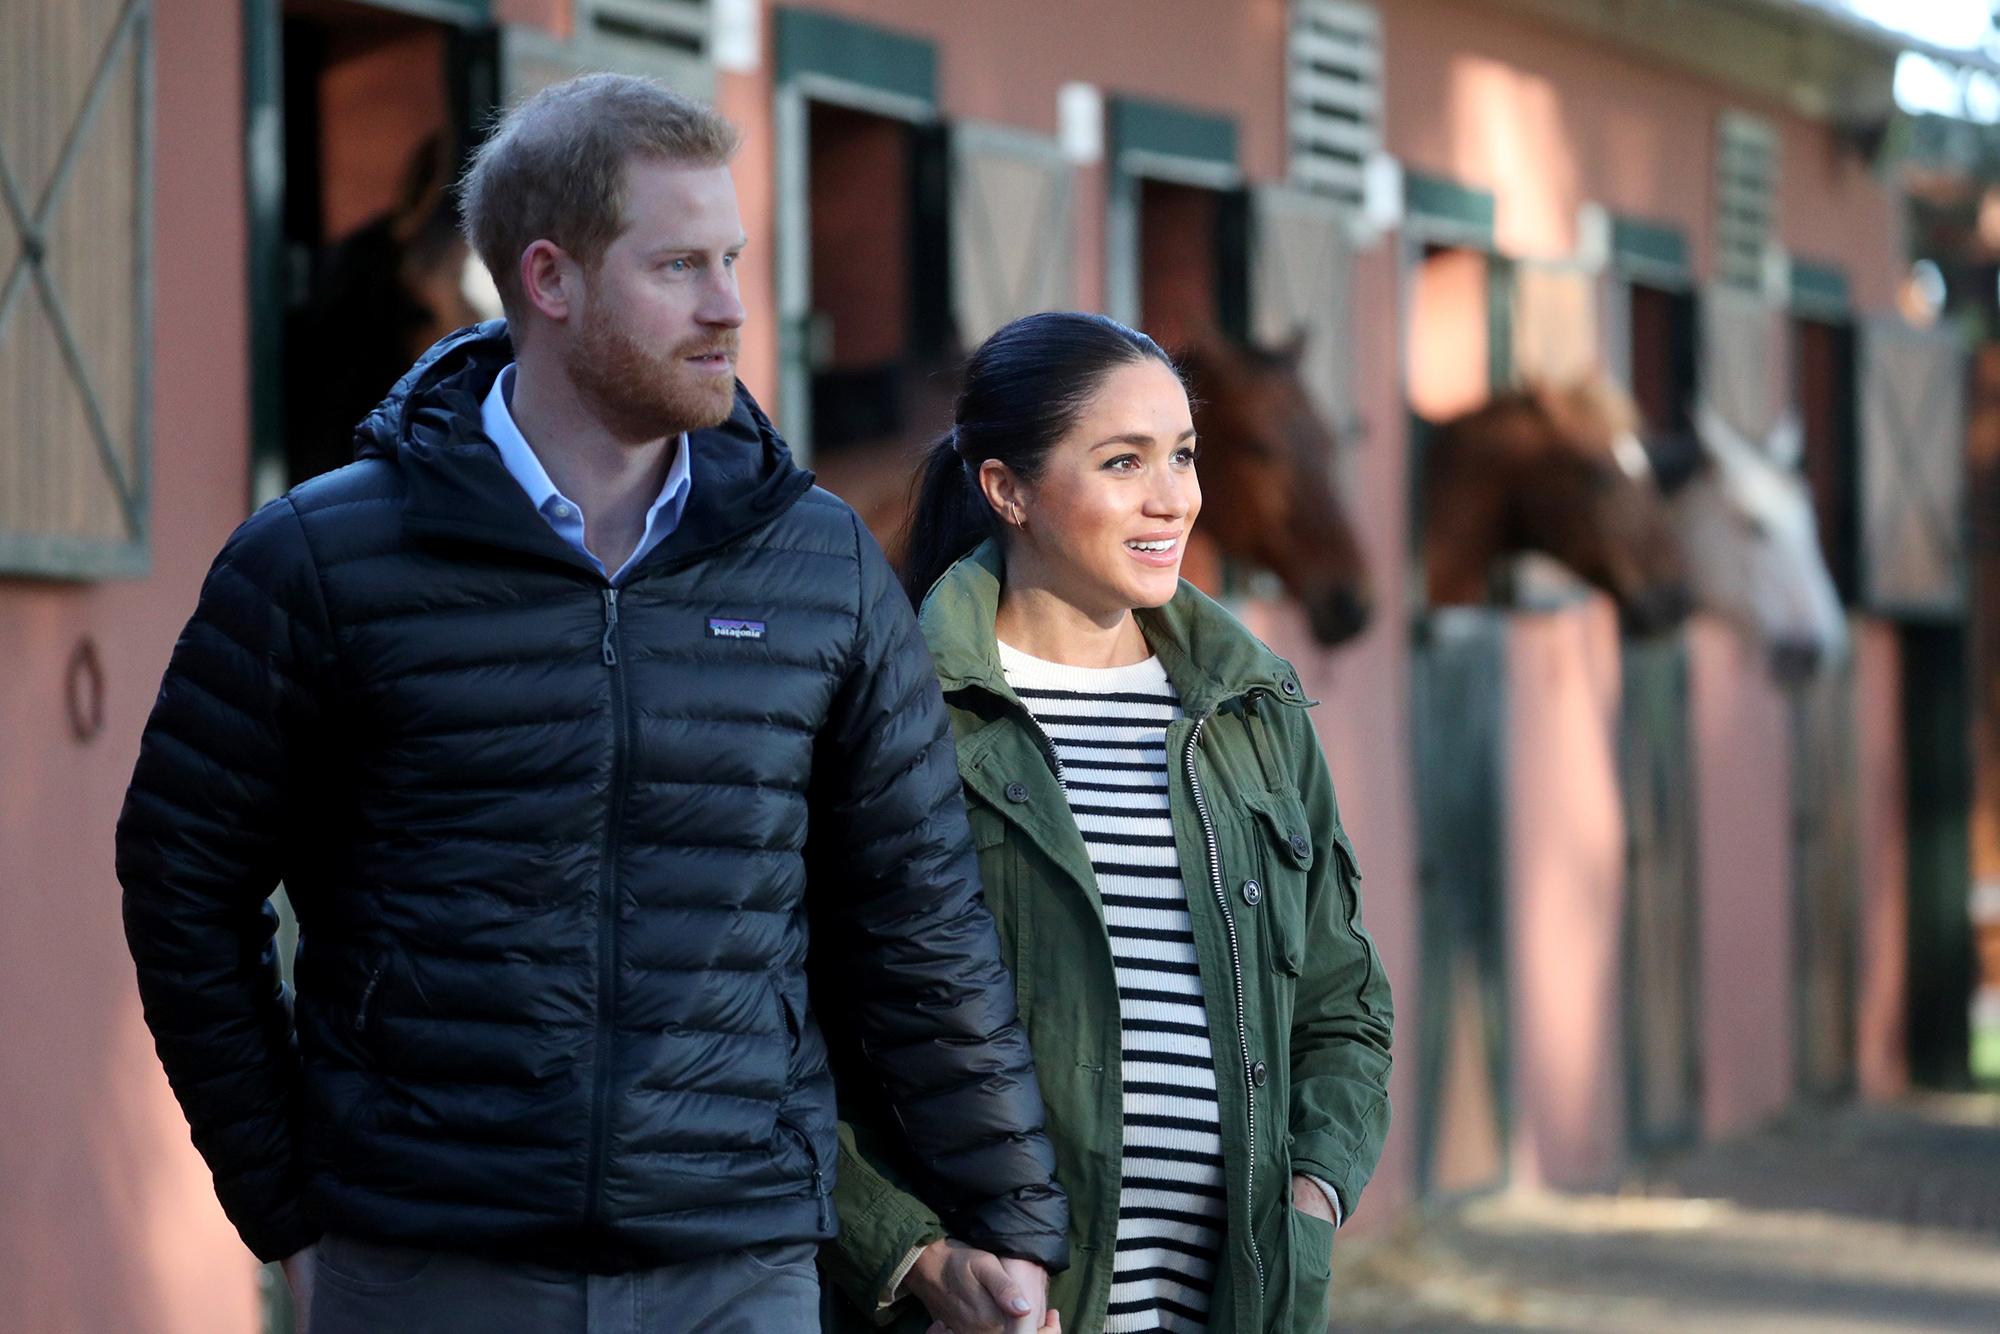 """Differences Duchess Meghan Duchess Kate During Pregnancy - Meghan and her husband revealed that t hey'll be keeping their baby's arrival private . """"The Duke and Duchess of Sussex are very grateful for the goodwill they have received from people throughout the United Kingdom and around the world as they prepare to welcome their baby,"""" Buckingham Palace said in a statement in April 2019."""